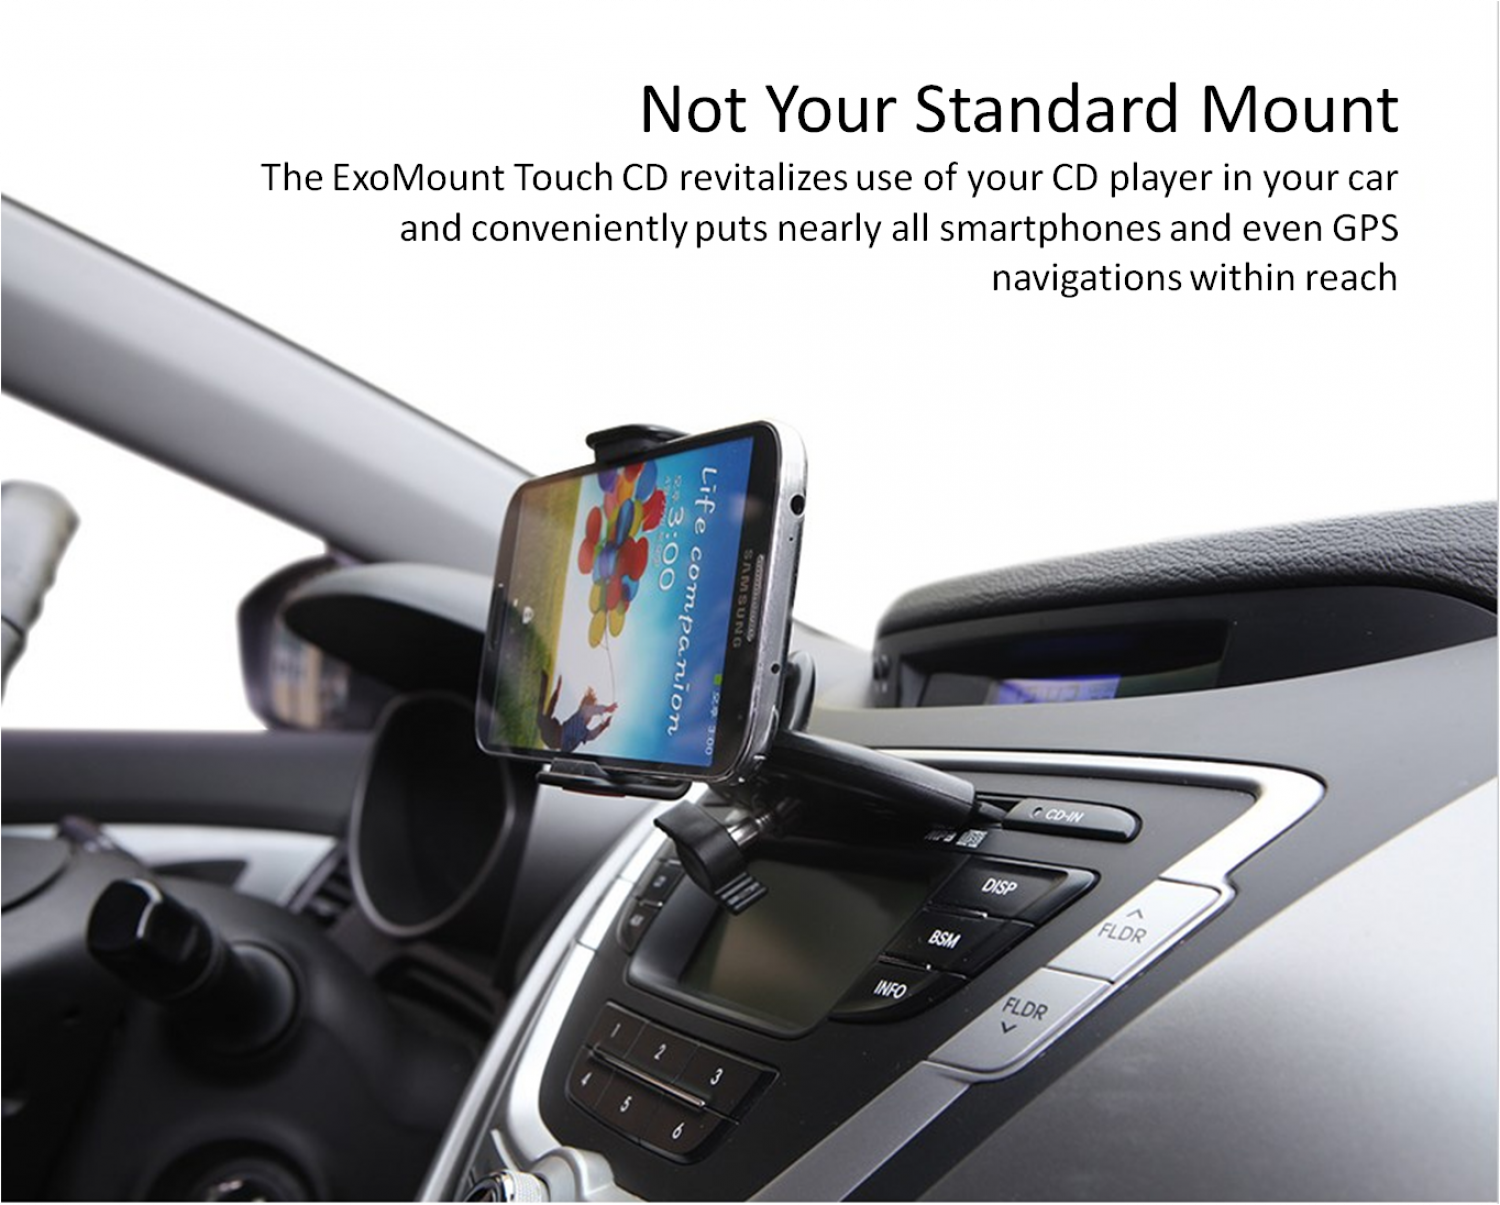 http://www.goodtechaccessories.com/7-extremely-useful-cell-phone-car-mount/ Infographic